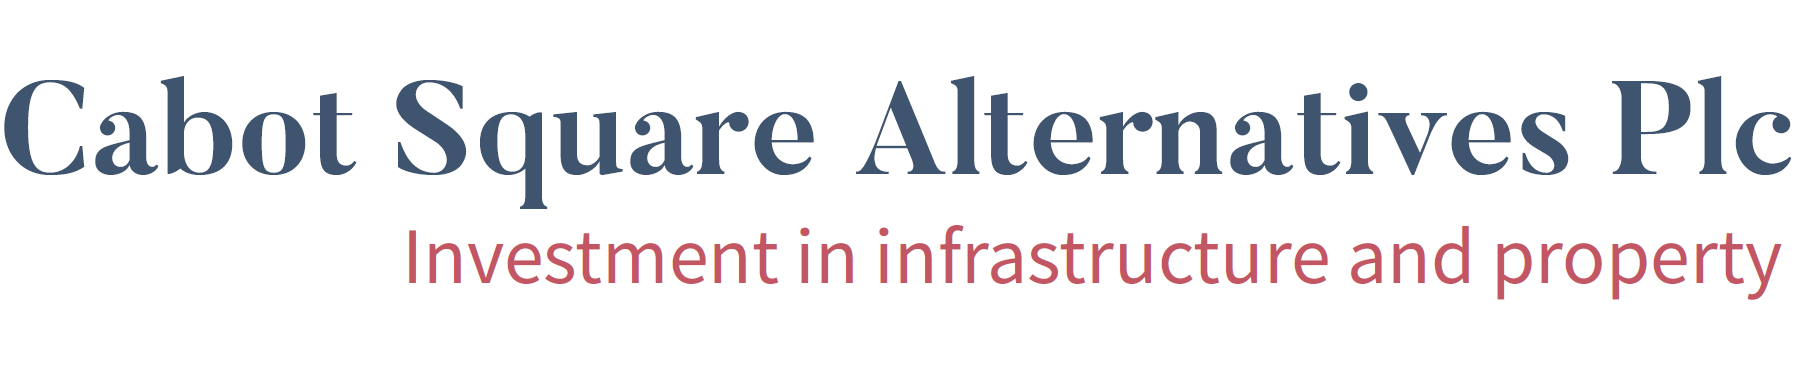 Cabot Square Alternatives PLC logo